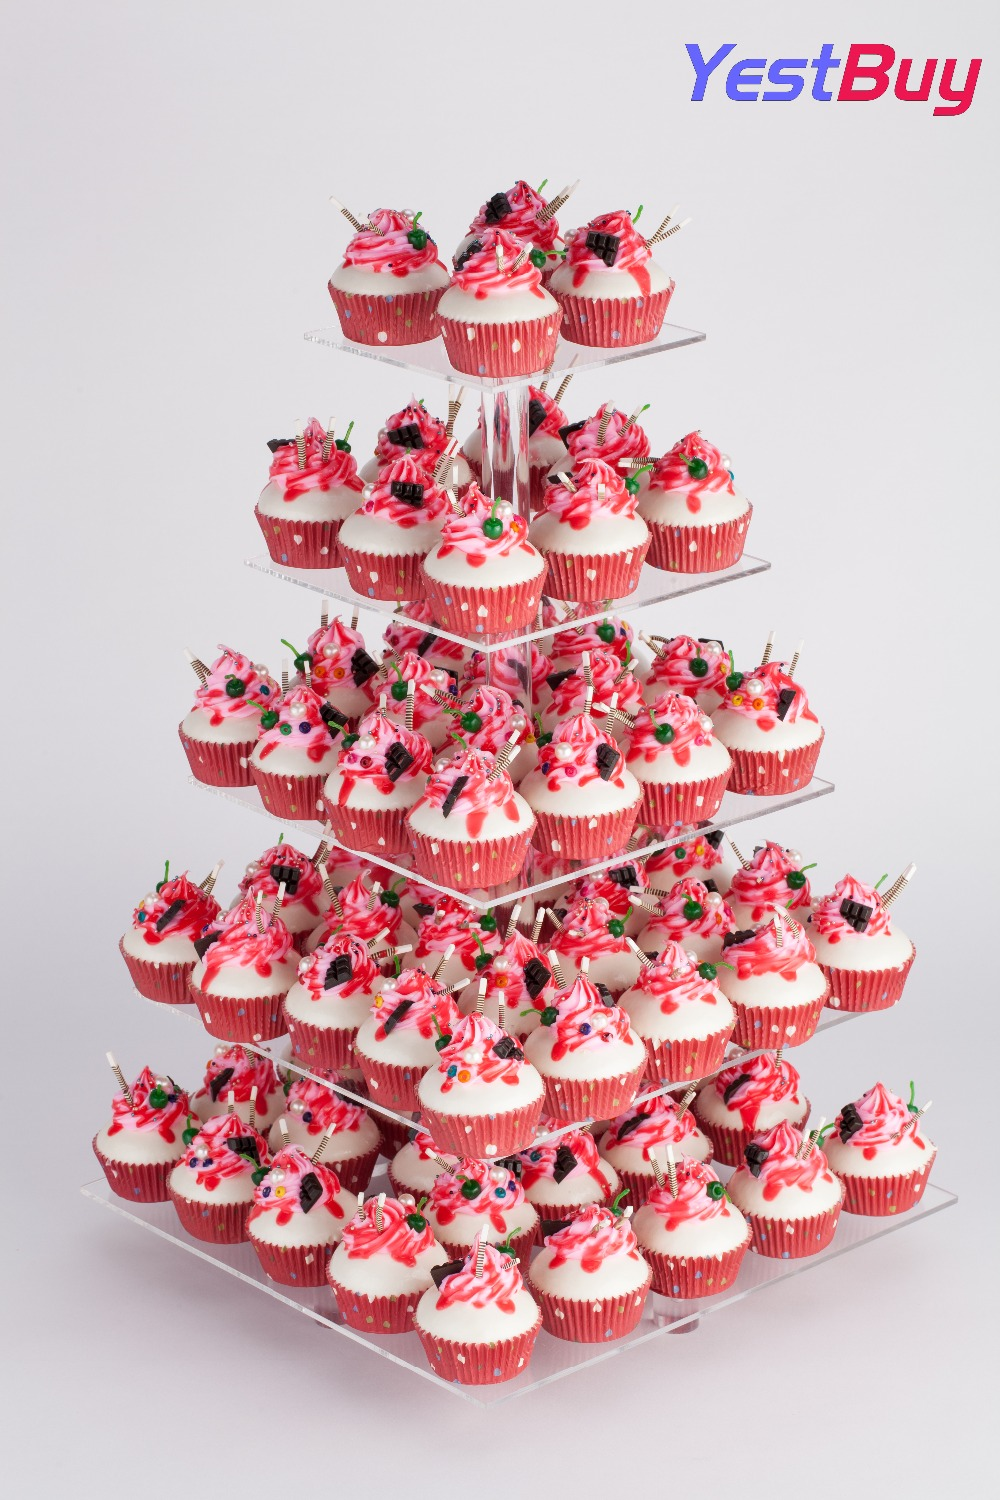 5 Tier Maypole White Acrylic Cupcake Stand Tower Display